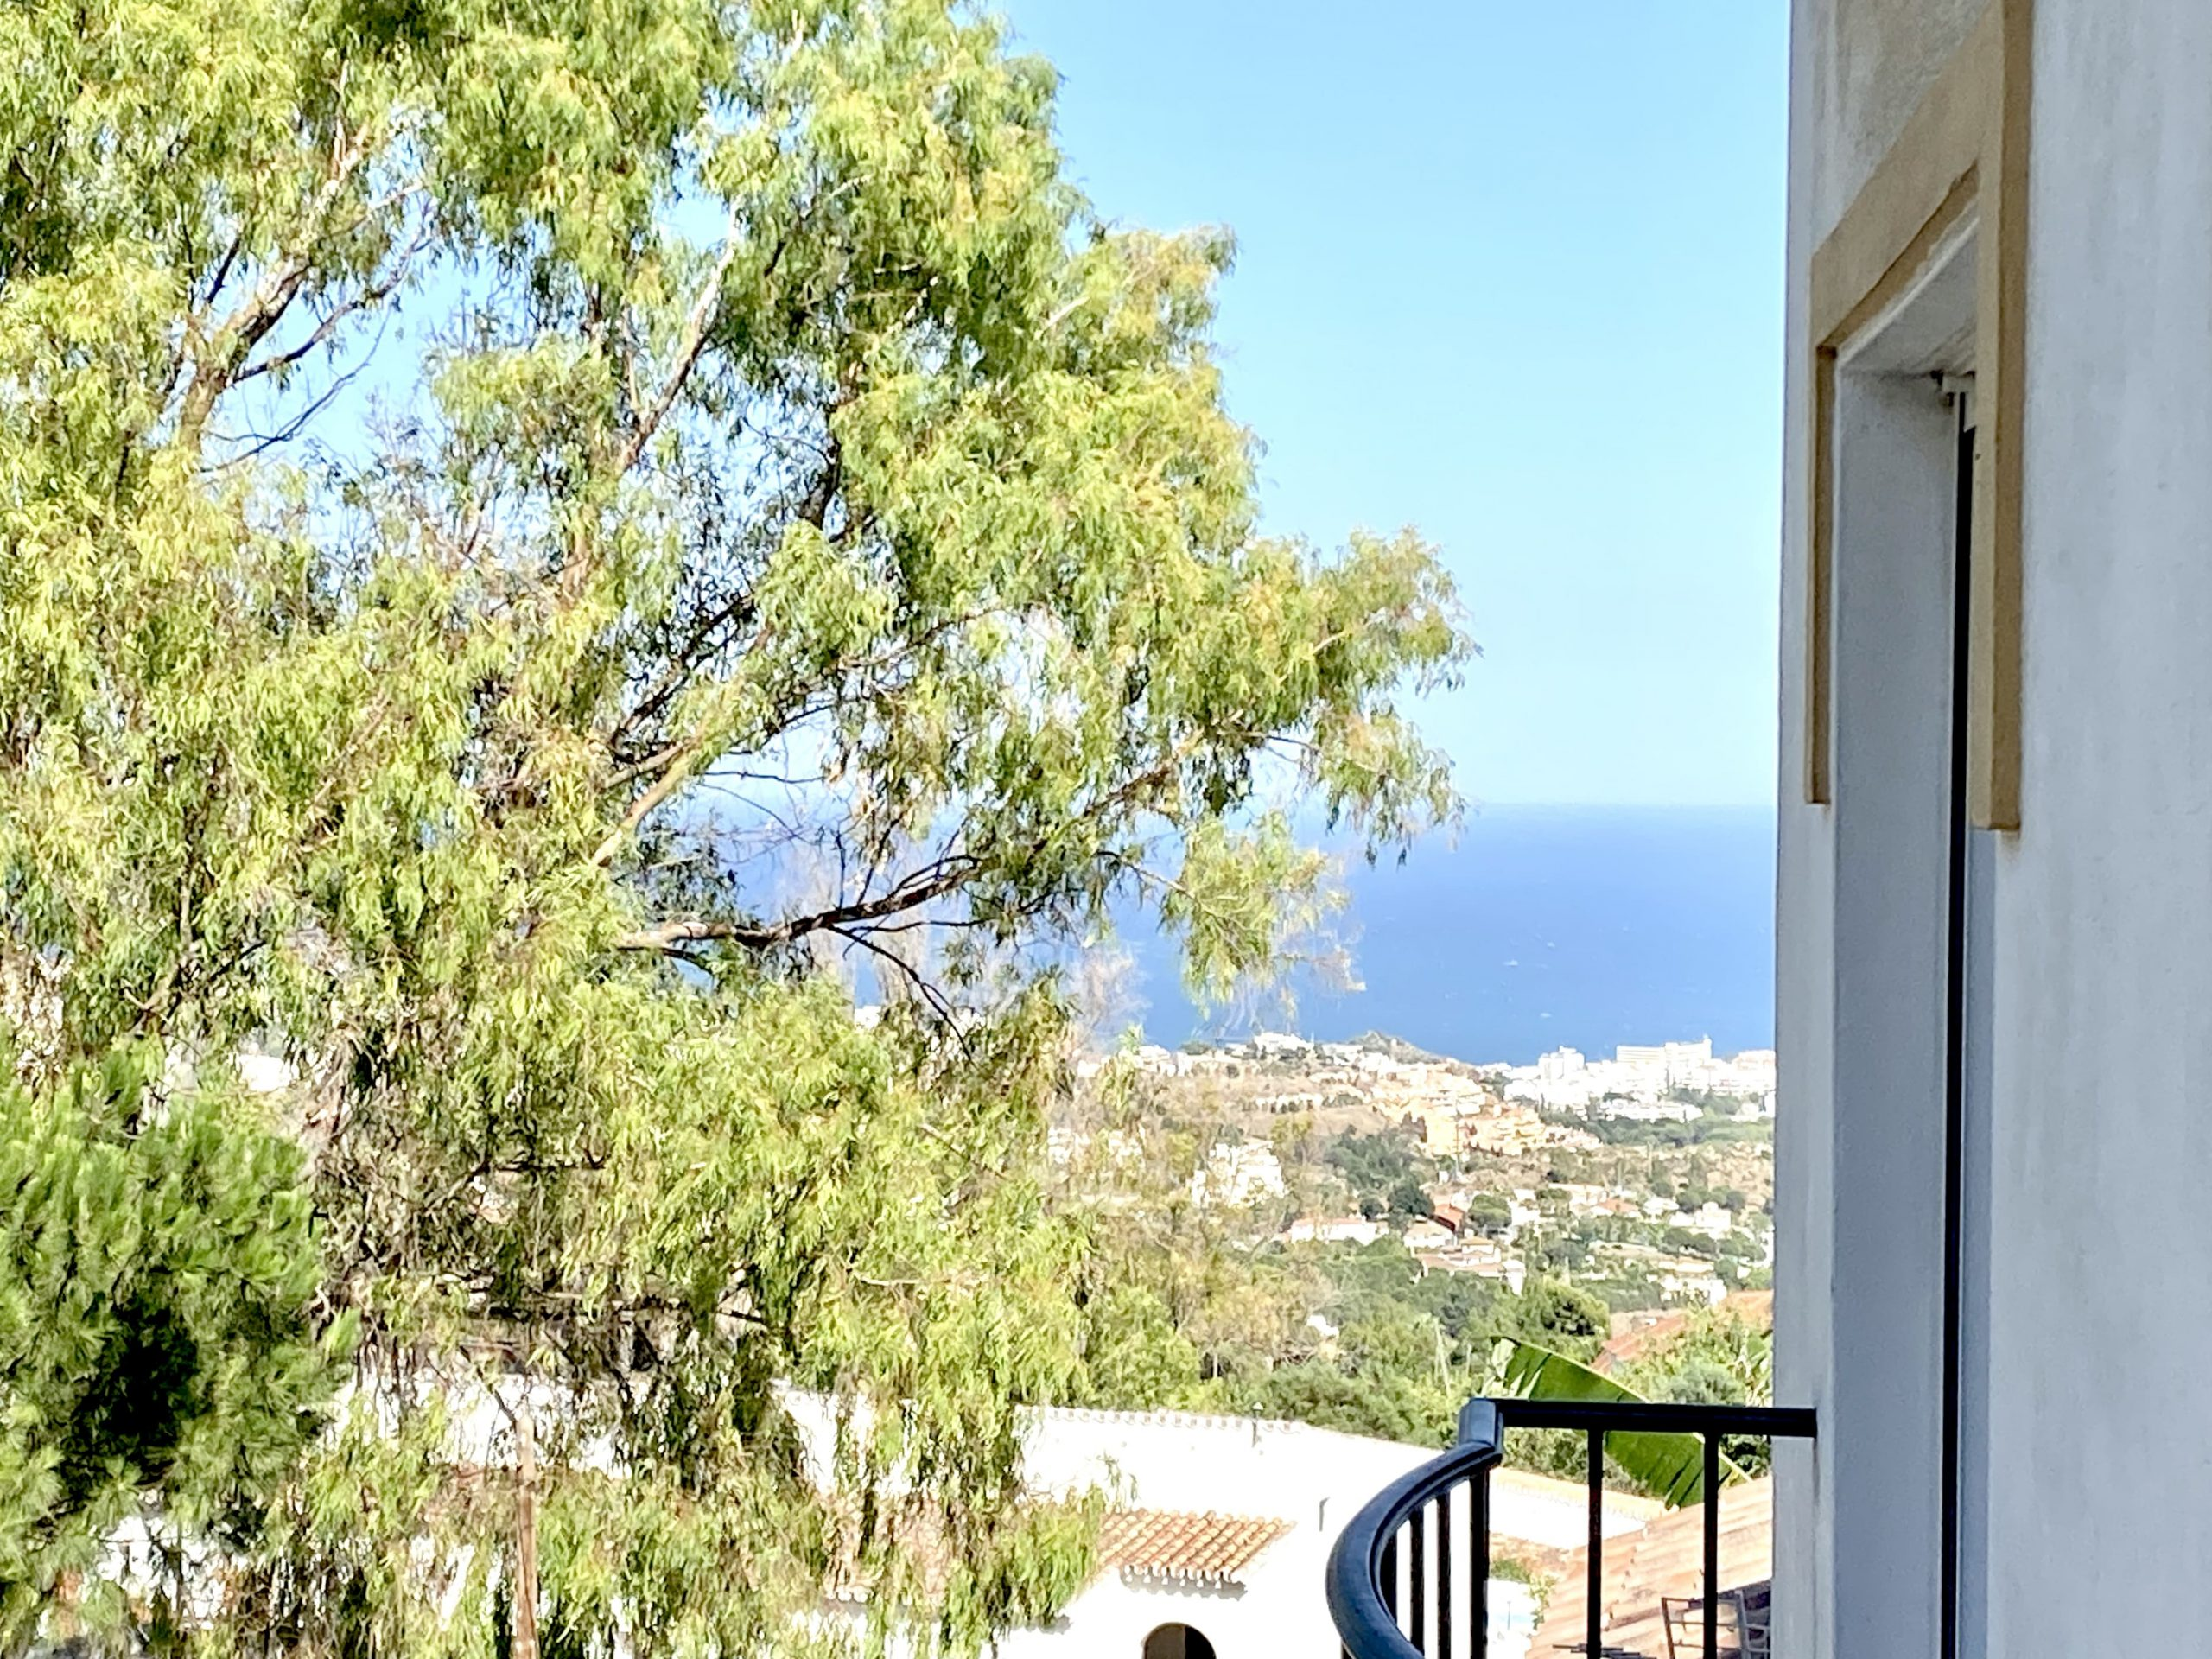 Spacious and Bright 3 Bedroom Apartment, easy to add a 4th bedroom, in the heart of Benalmádena Pueblo